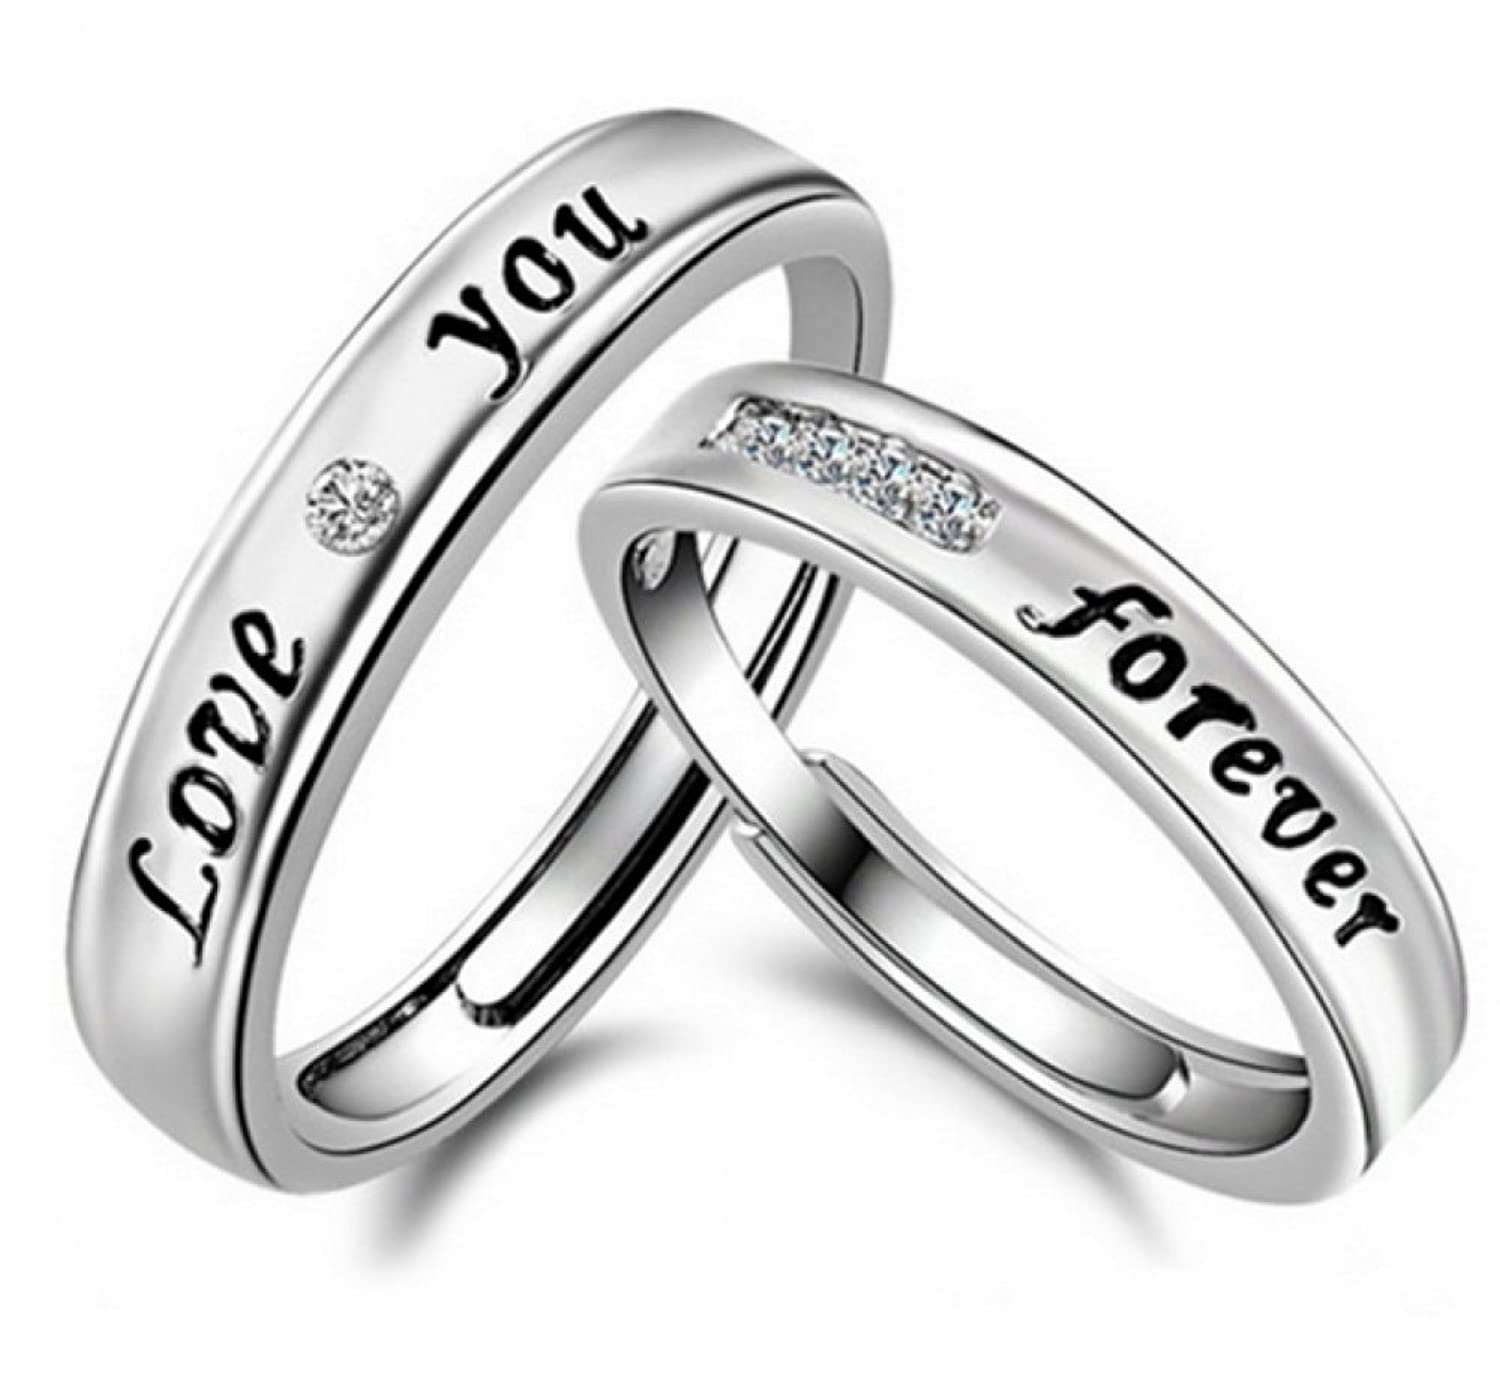 finger stripe love endless silver ring men couple product lover stainless rings gift zircon steel women simple